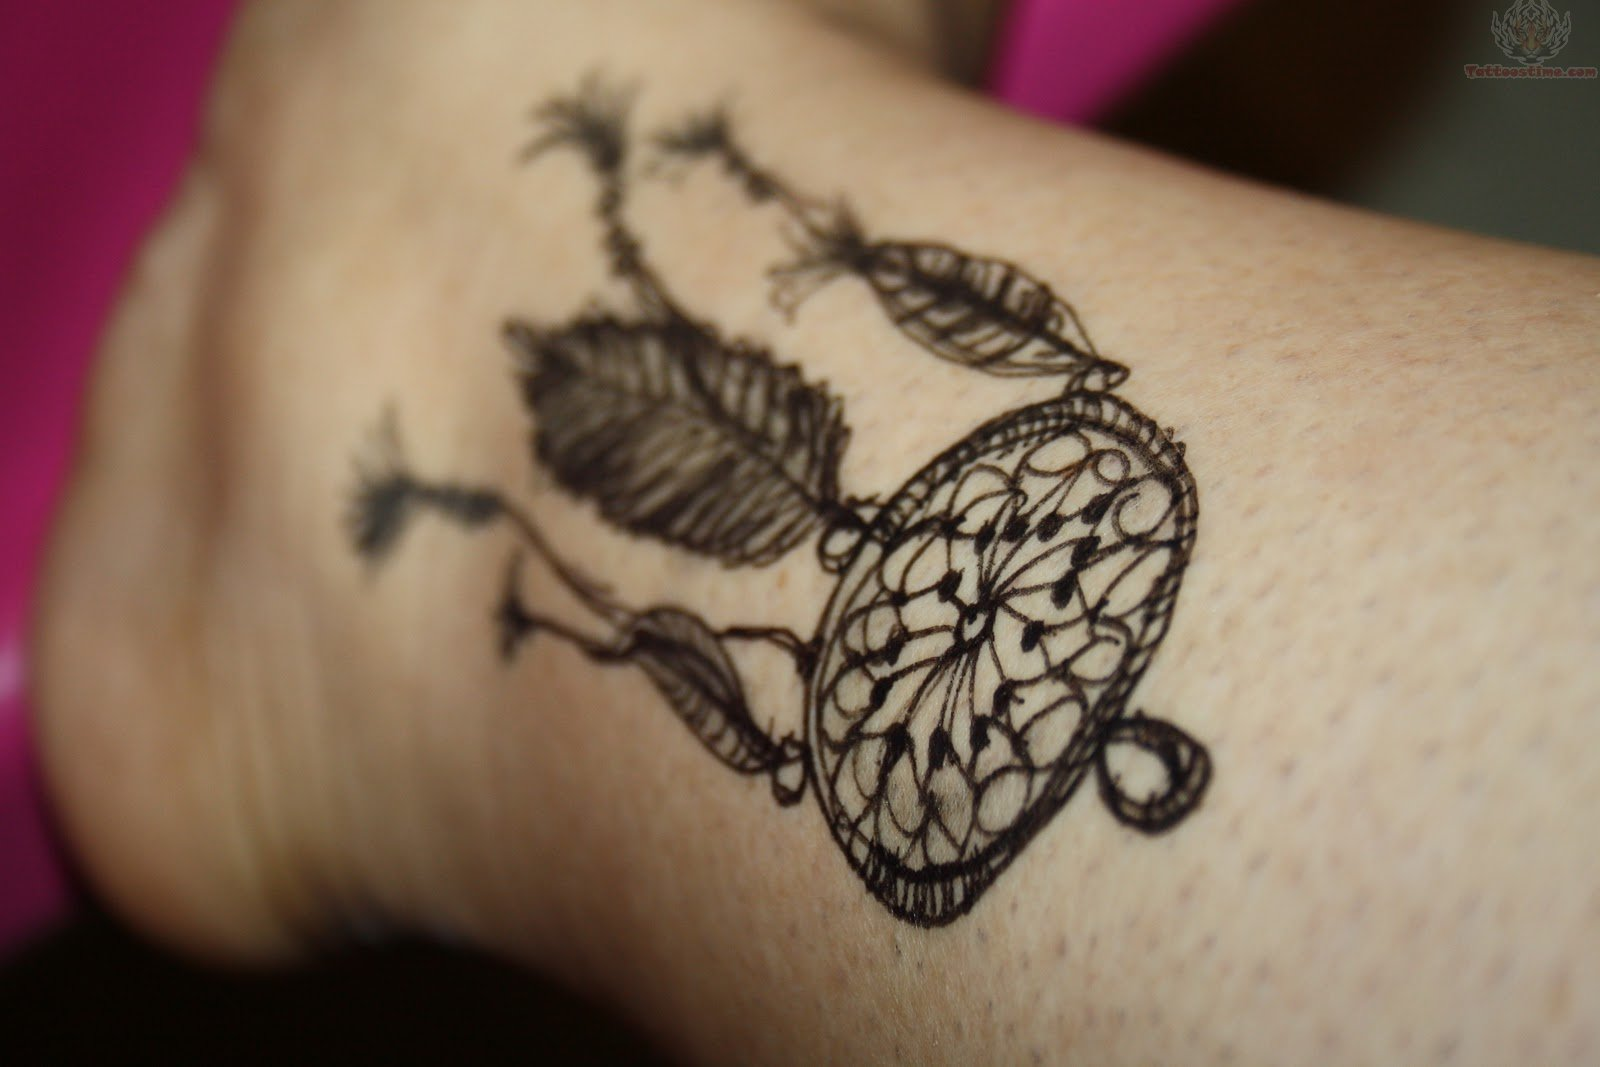 Dream Catcher Tattoo Designs for Women